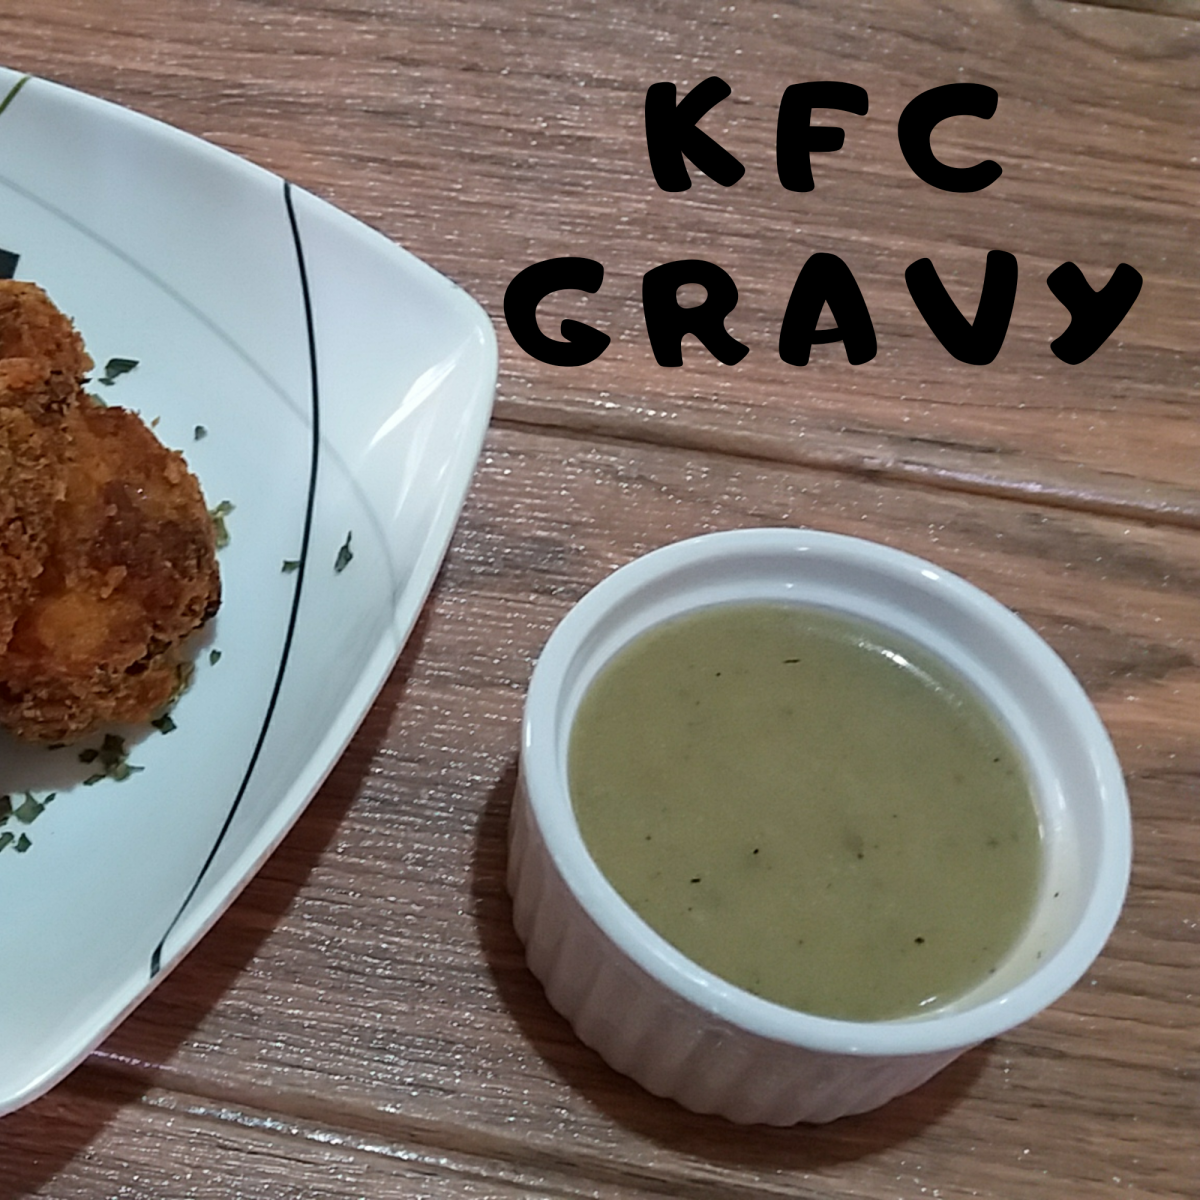 Do you love KFC gravy? Learn to make it at home!